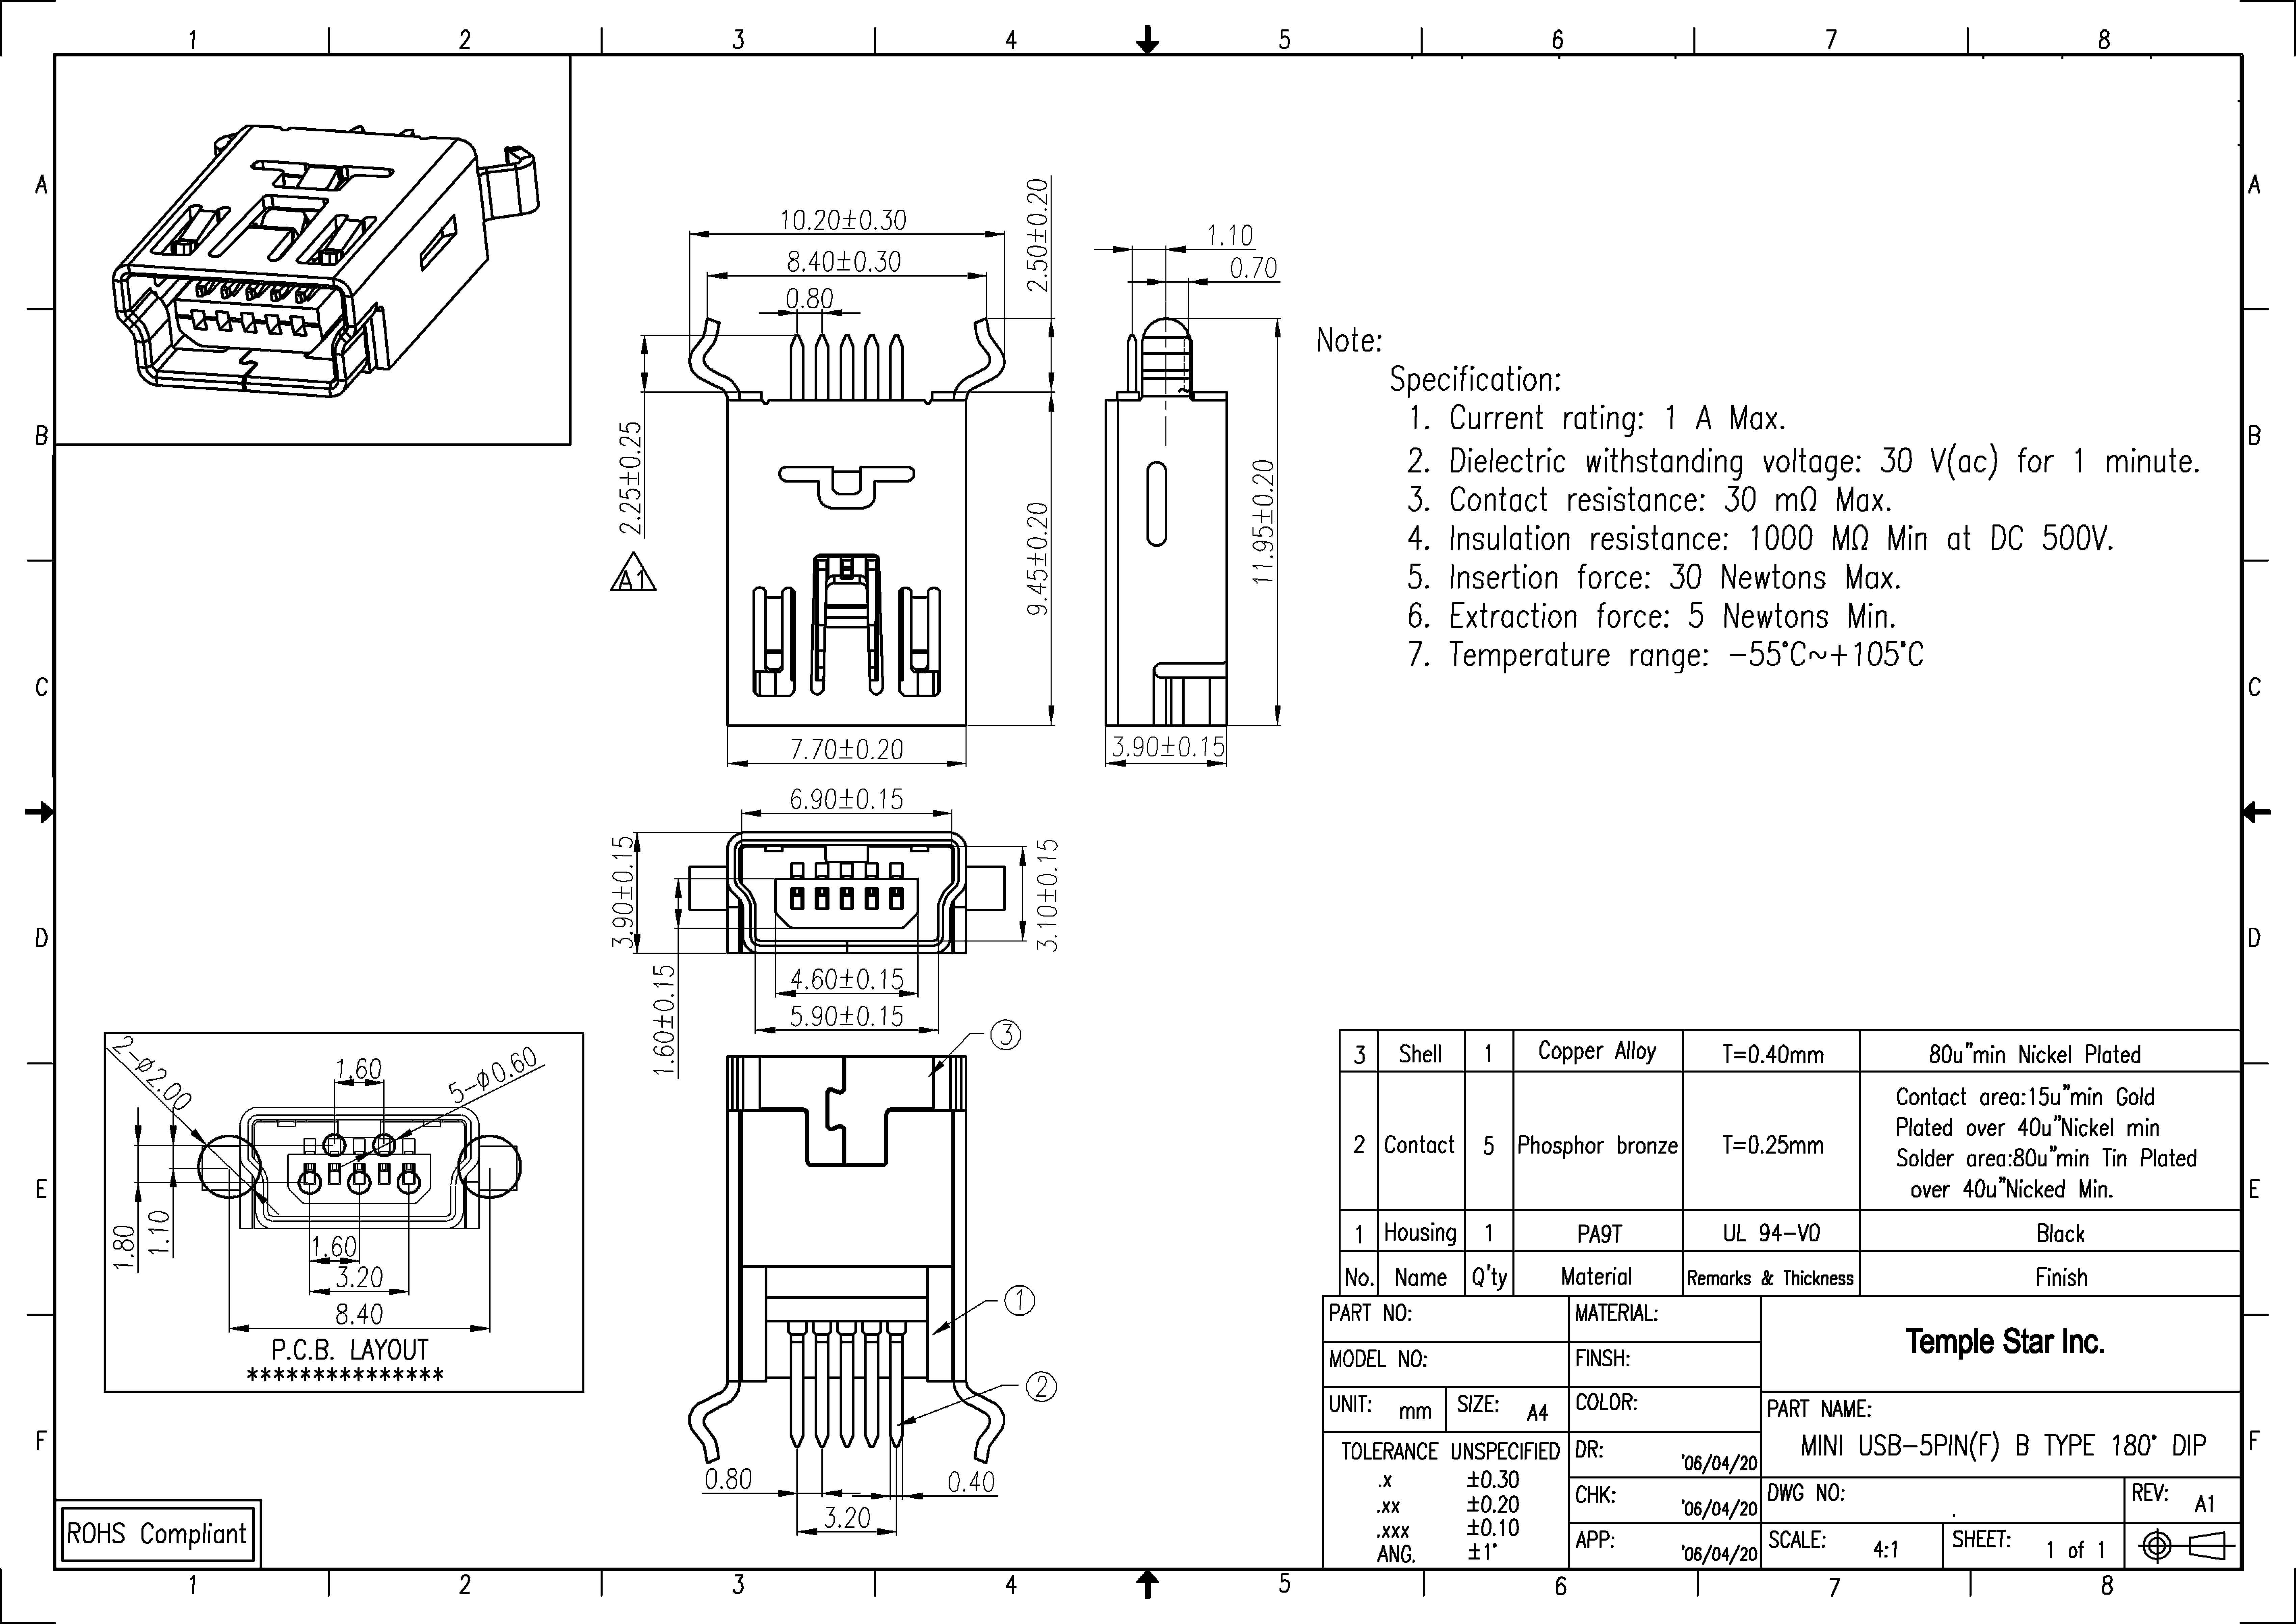 WRG-4500] Mini B Usb Wiring Diagram on circuit diagram, usb motherboard diagram, usb soldering diagram, usb splitter diagram, usb color diagram, usb wire connections, usb controller diagram, usb pinout, usb strip, usb schematic diagram, usb wire schematic, usb computer diagram, usb switch, usb outlets diagram, usb socket diagram, usb outlet adapter, usb connectors diagram, usb block diagram, usb cable, usb charging diagram,